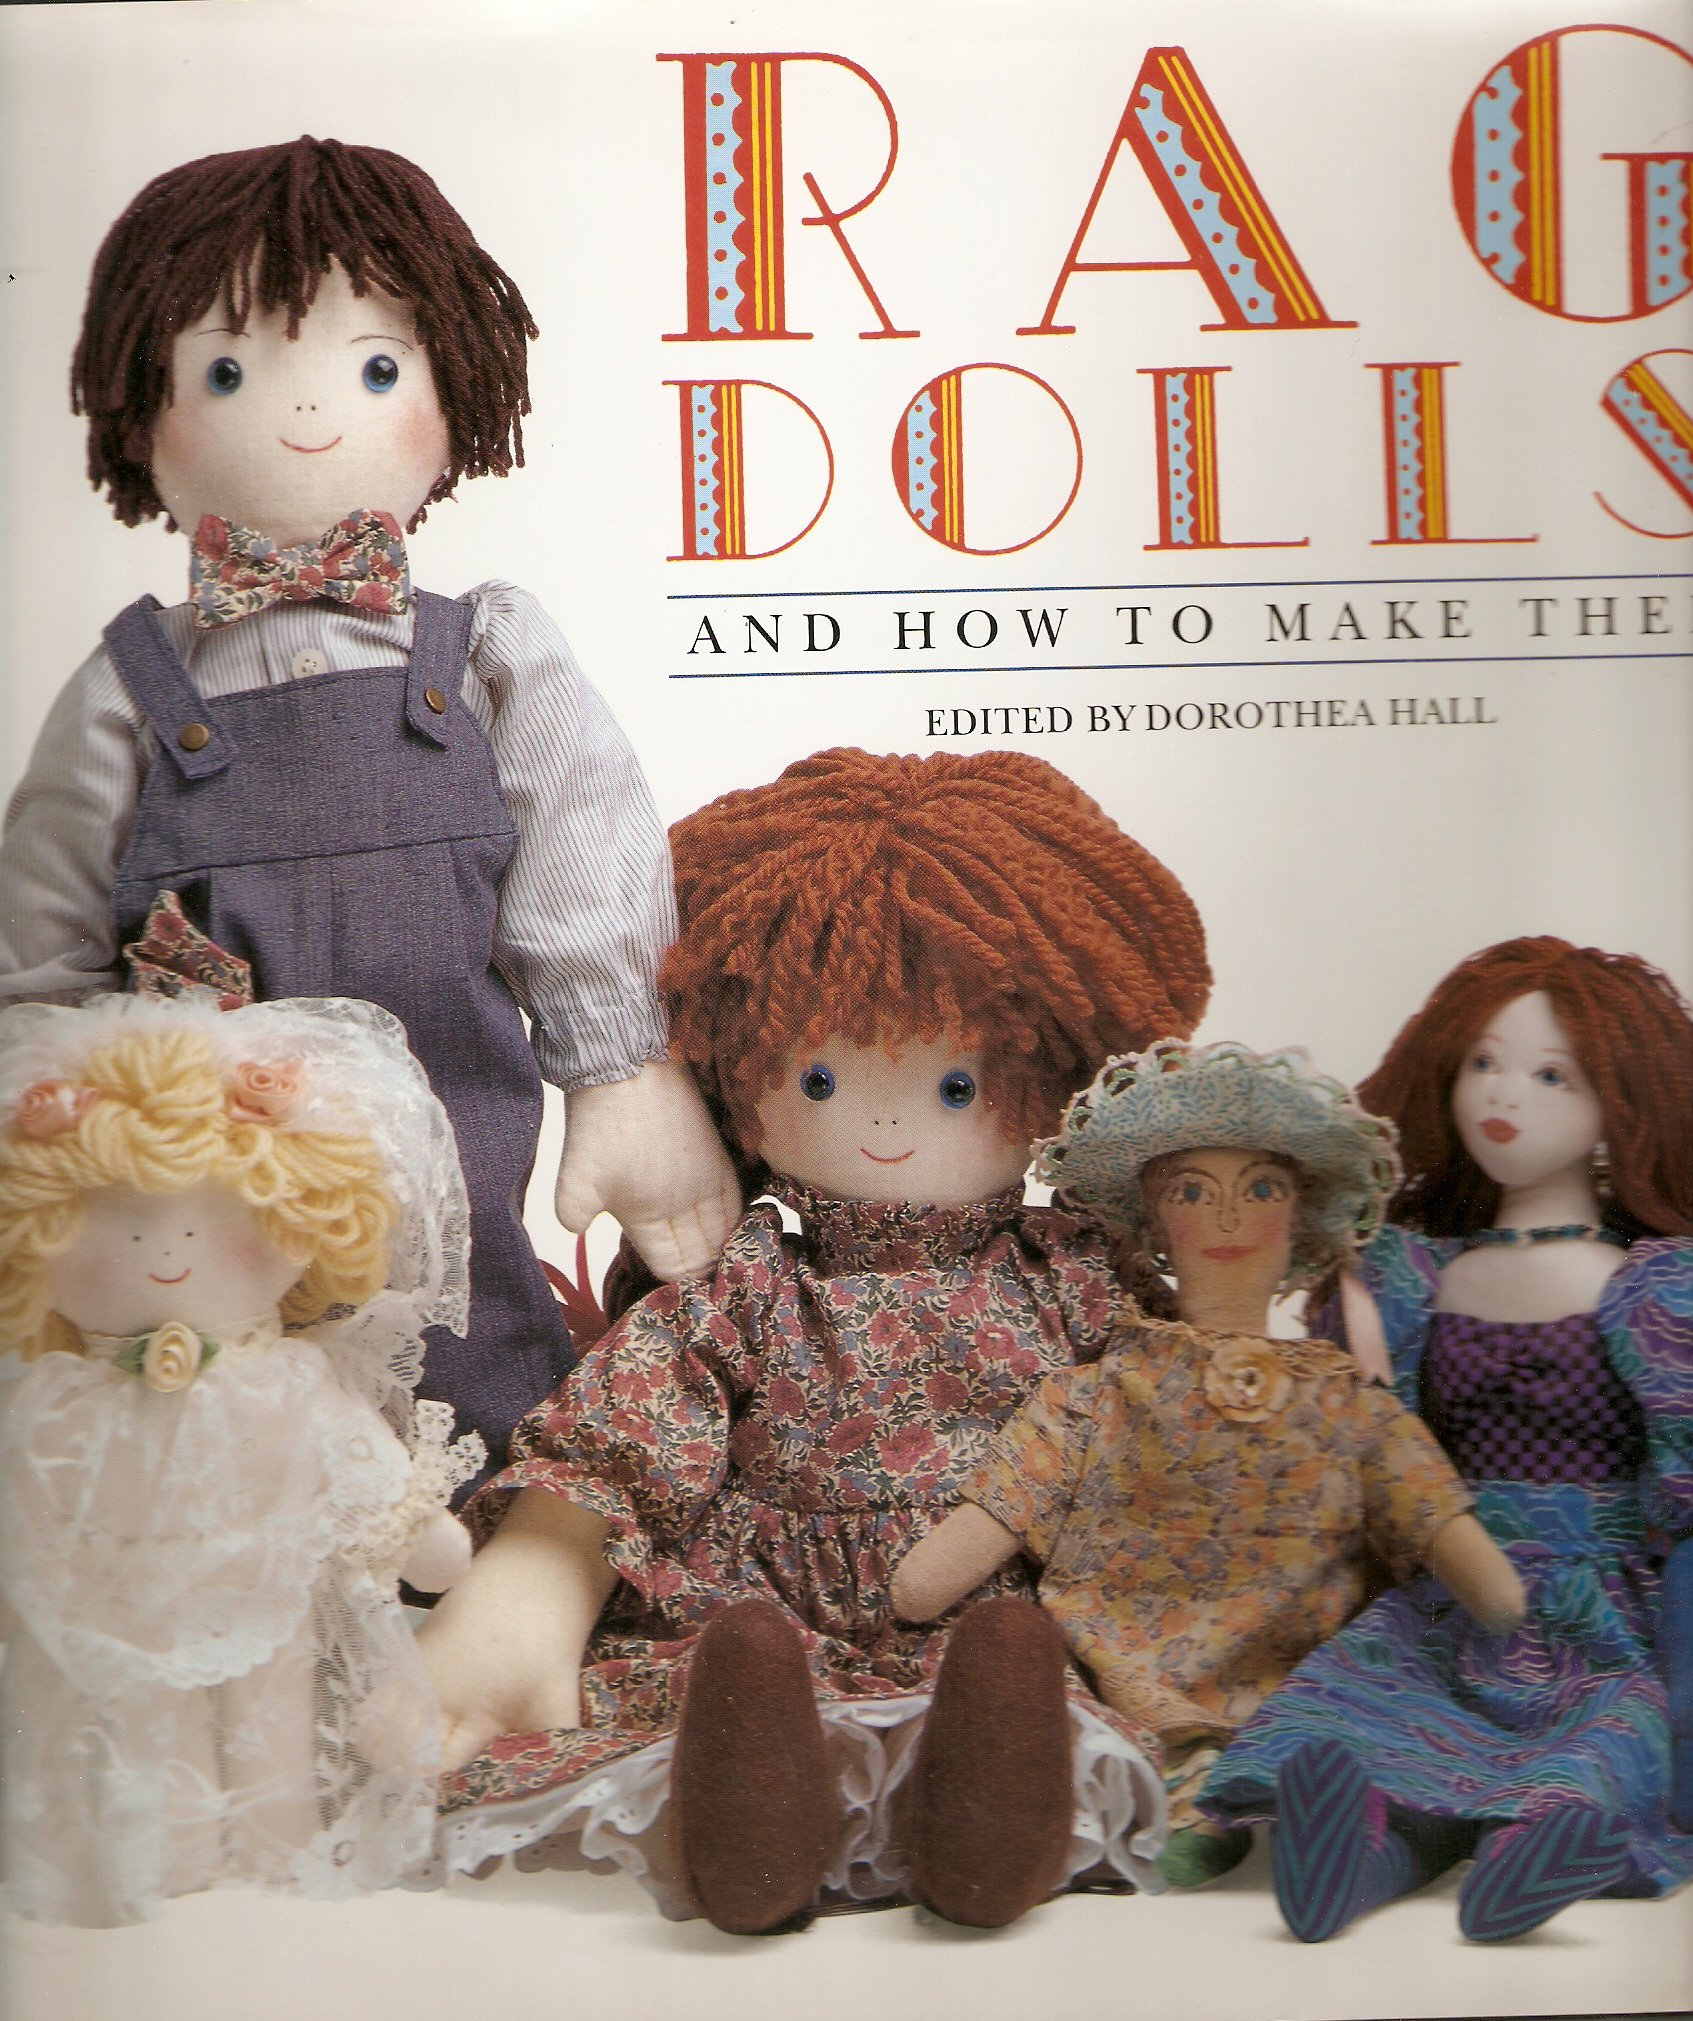 Childrens coloring sheet of a rag doll - Rag Dolls How To Make Them Dorothea Hall 9781561383528 Amazon Com Books